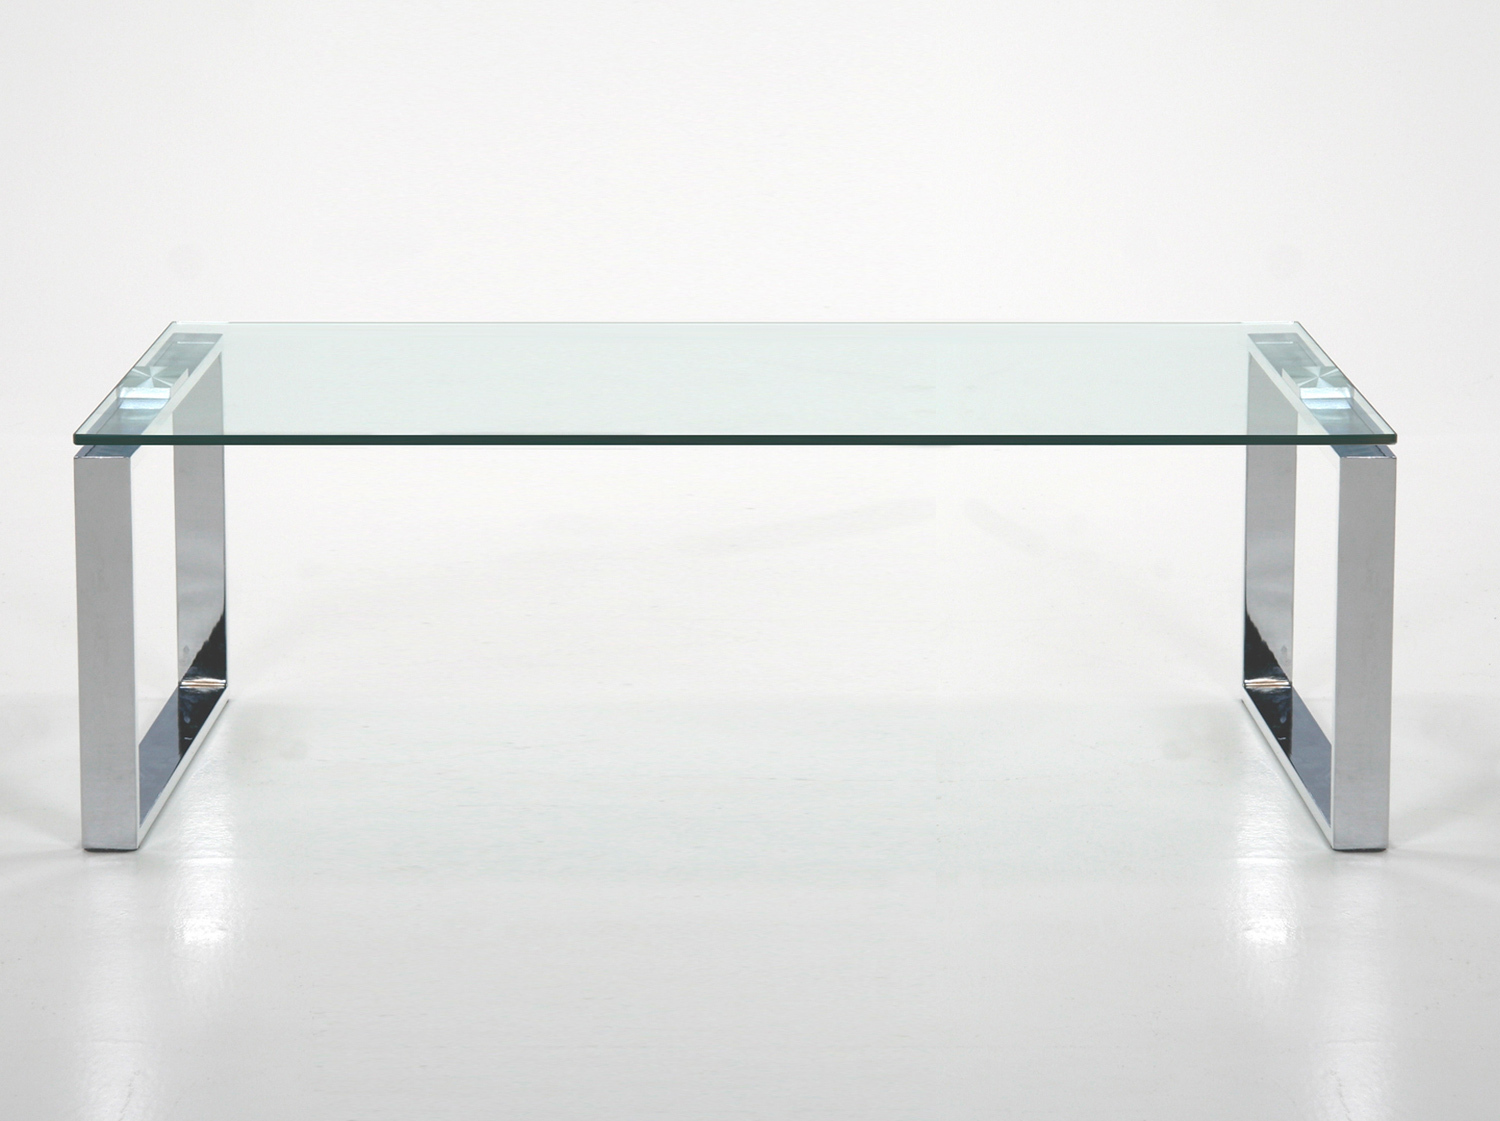 Glass Coffee Table You Could Sit Down And Relax On The Sofa With Your Cup Of Nescafe At This Table (Photo 9 of 10)